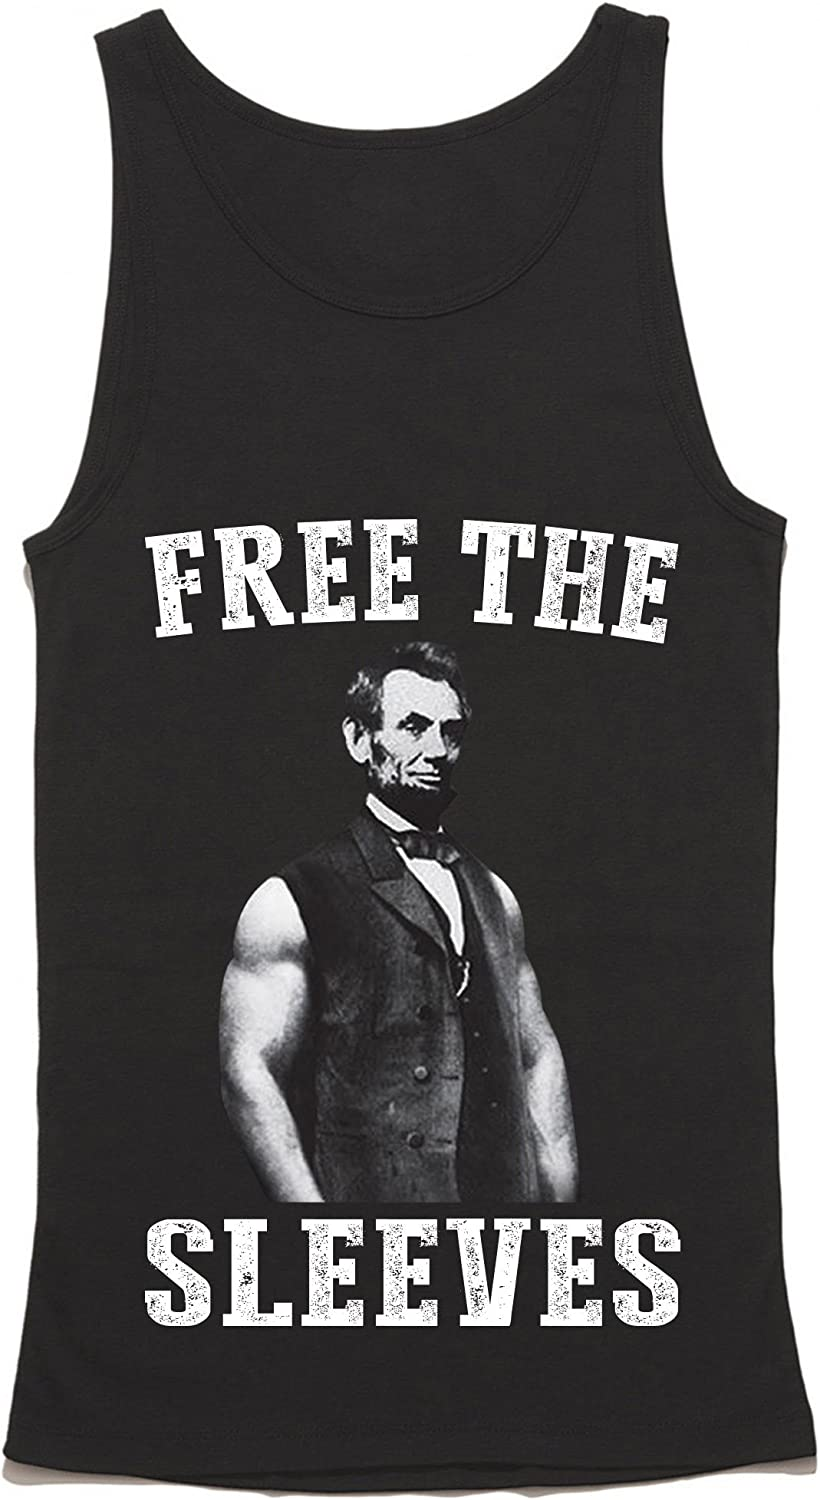 Abe Lincoln Abolish Sleevery HGOS Free The Sleeves Tank Top Funny Gym Tank Top